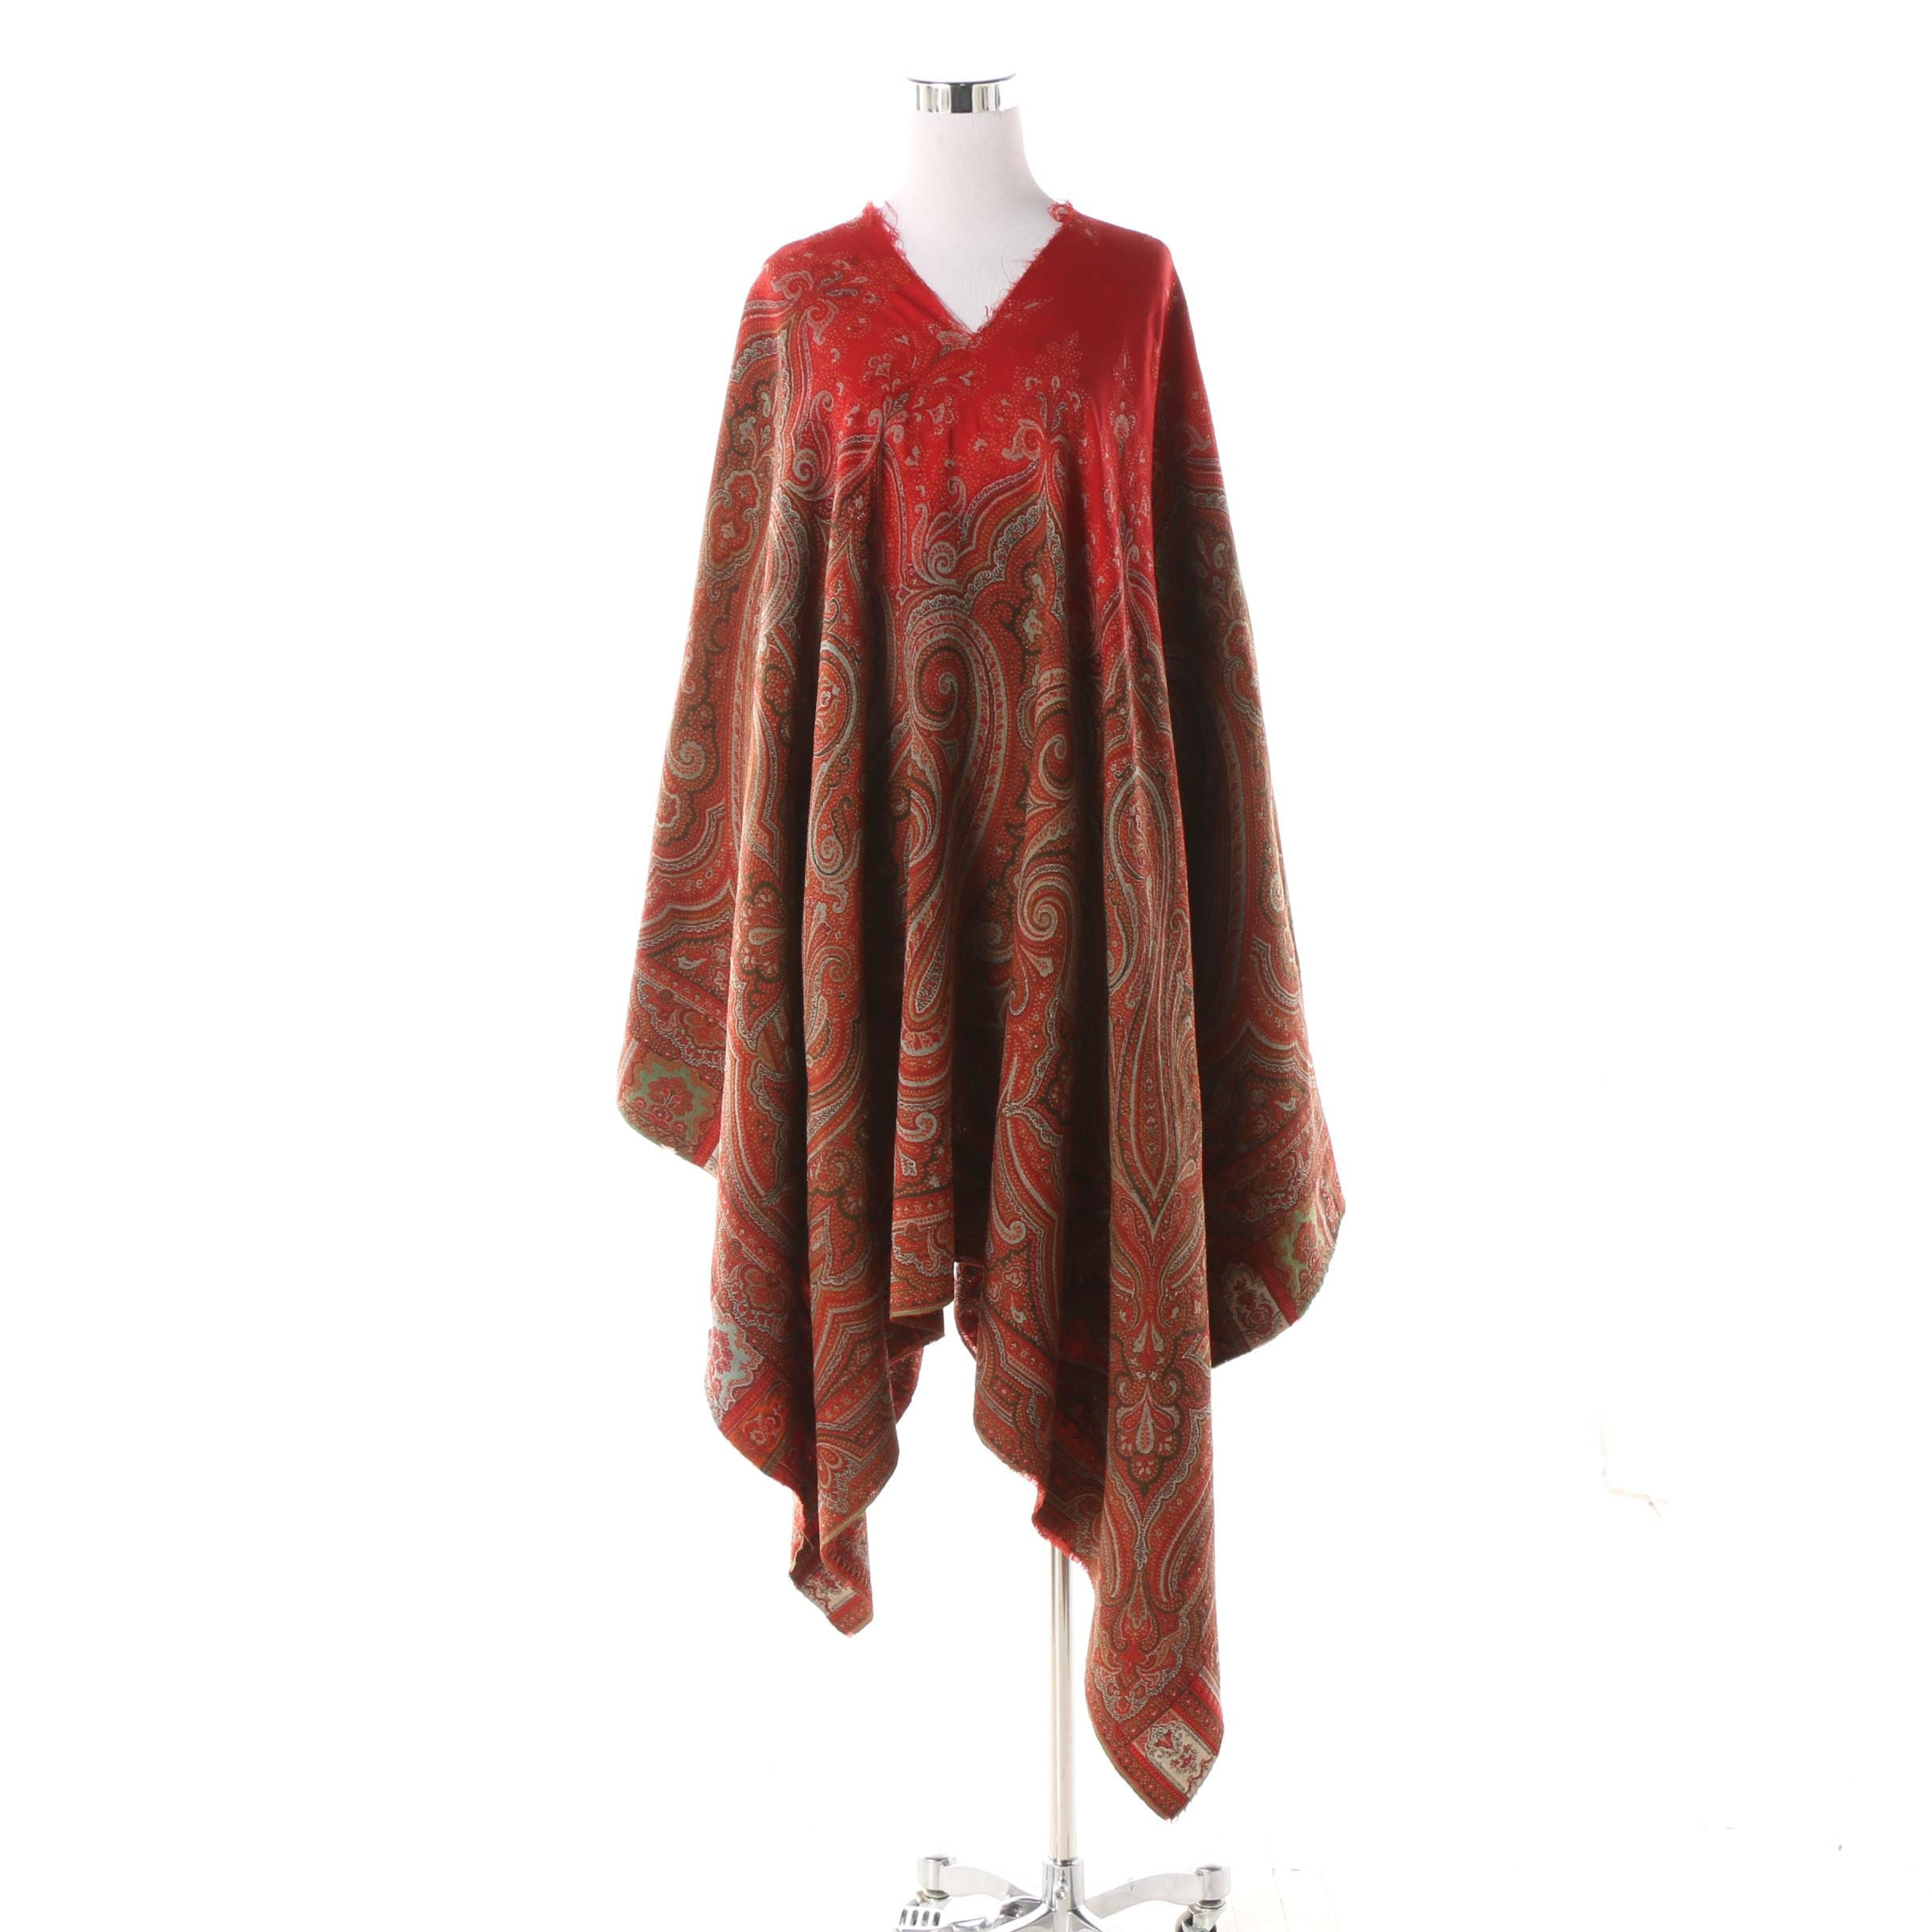 Woven Paisley Shawl with Poncho Style Alterations